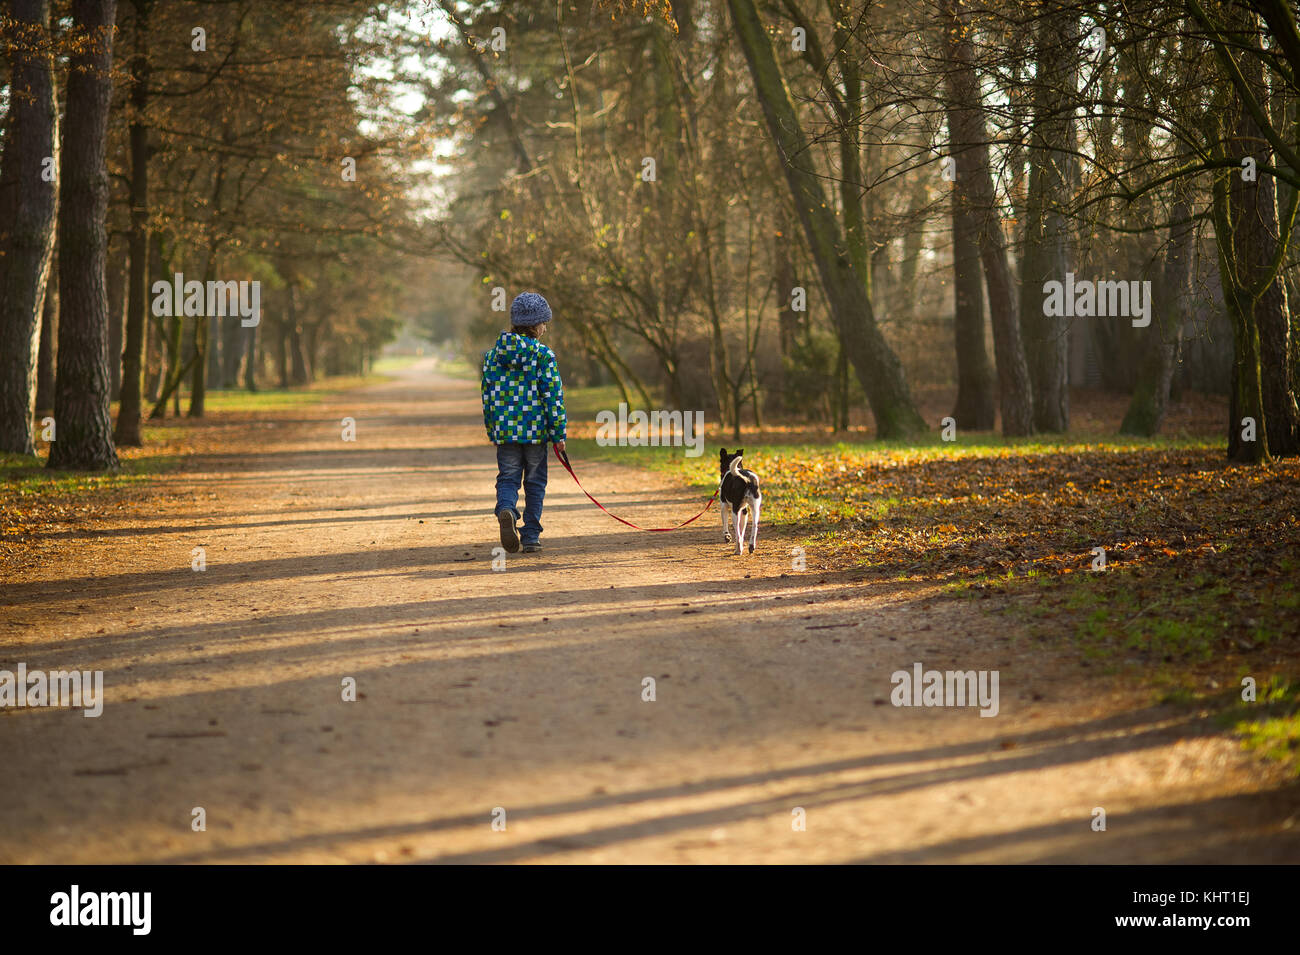 Boy 10-11 years walking the dog in autumn Park. He is holding the leash of a black-and-white cute dog. - Stock Image